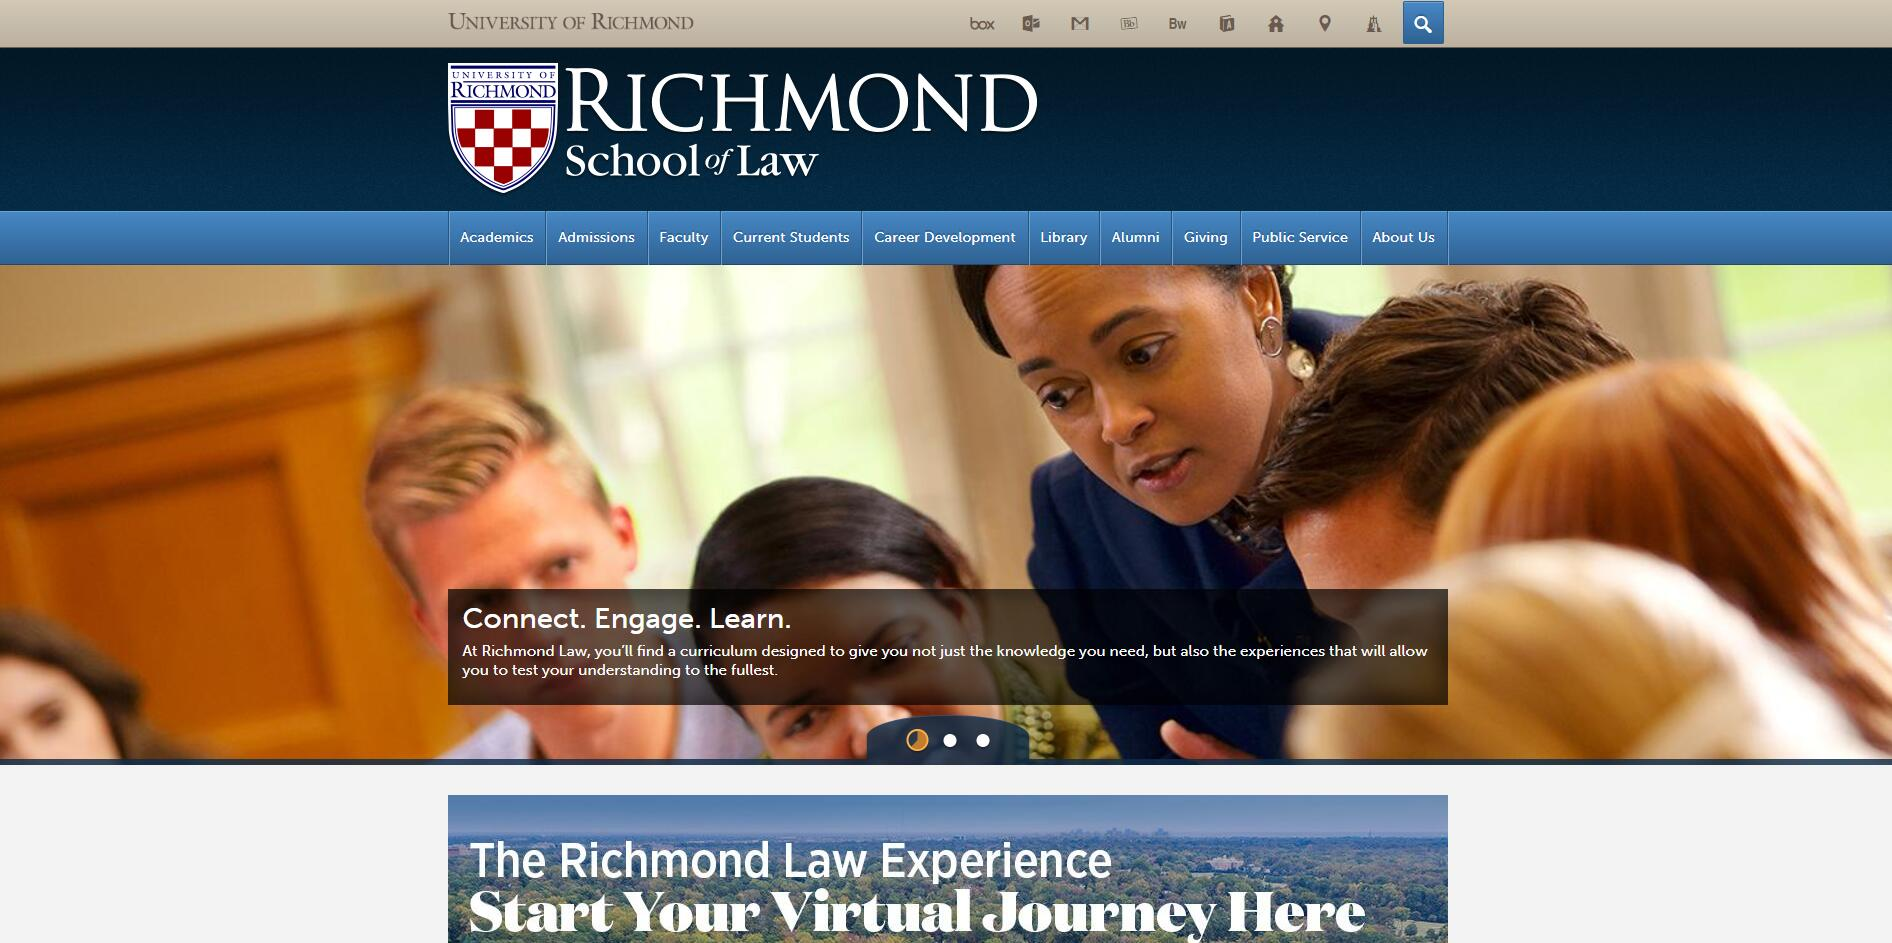 The T.C. Williams School of Law at University of Richmond